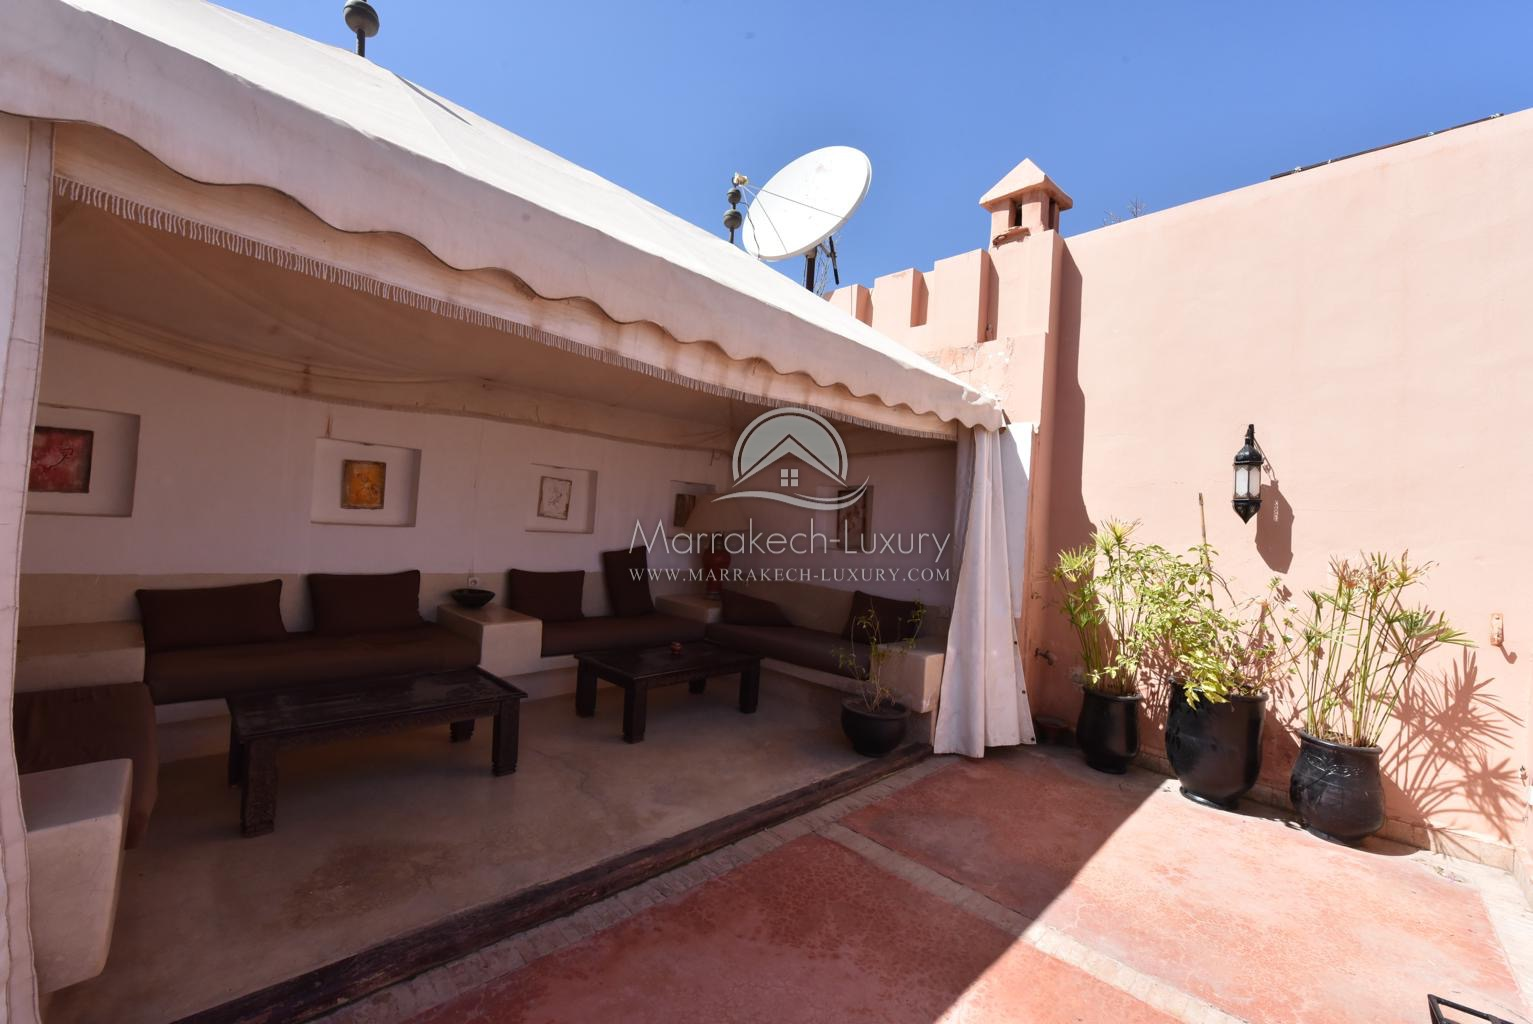 Riaavmed1037ma 42 agence immobili re marrakech acheter for Agence immobiliere 42